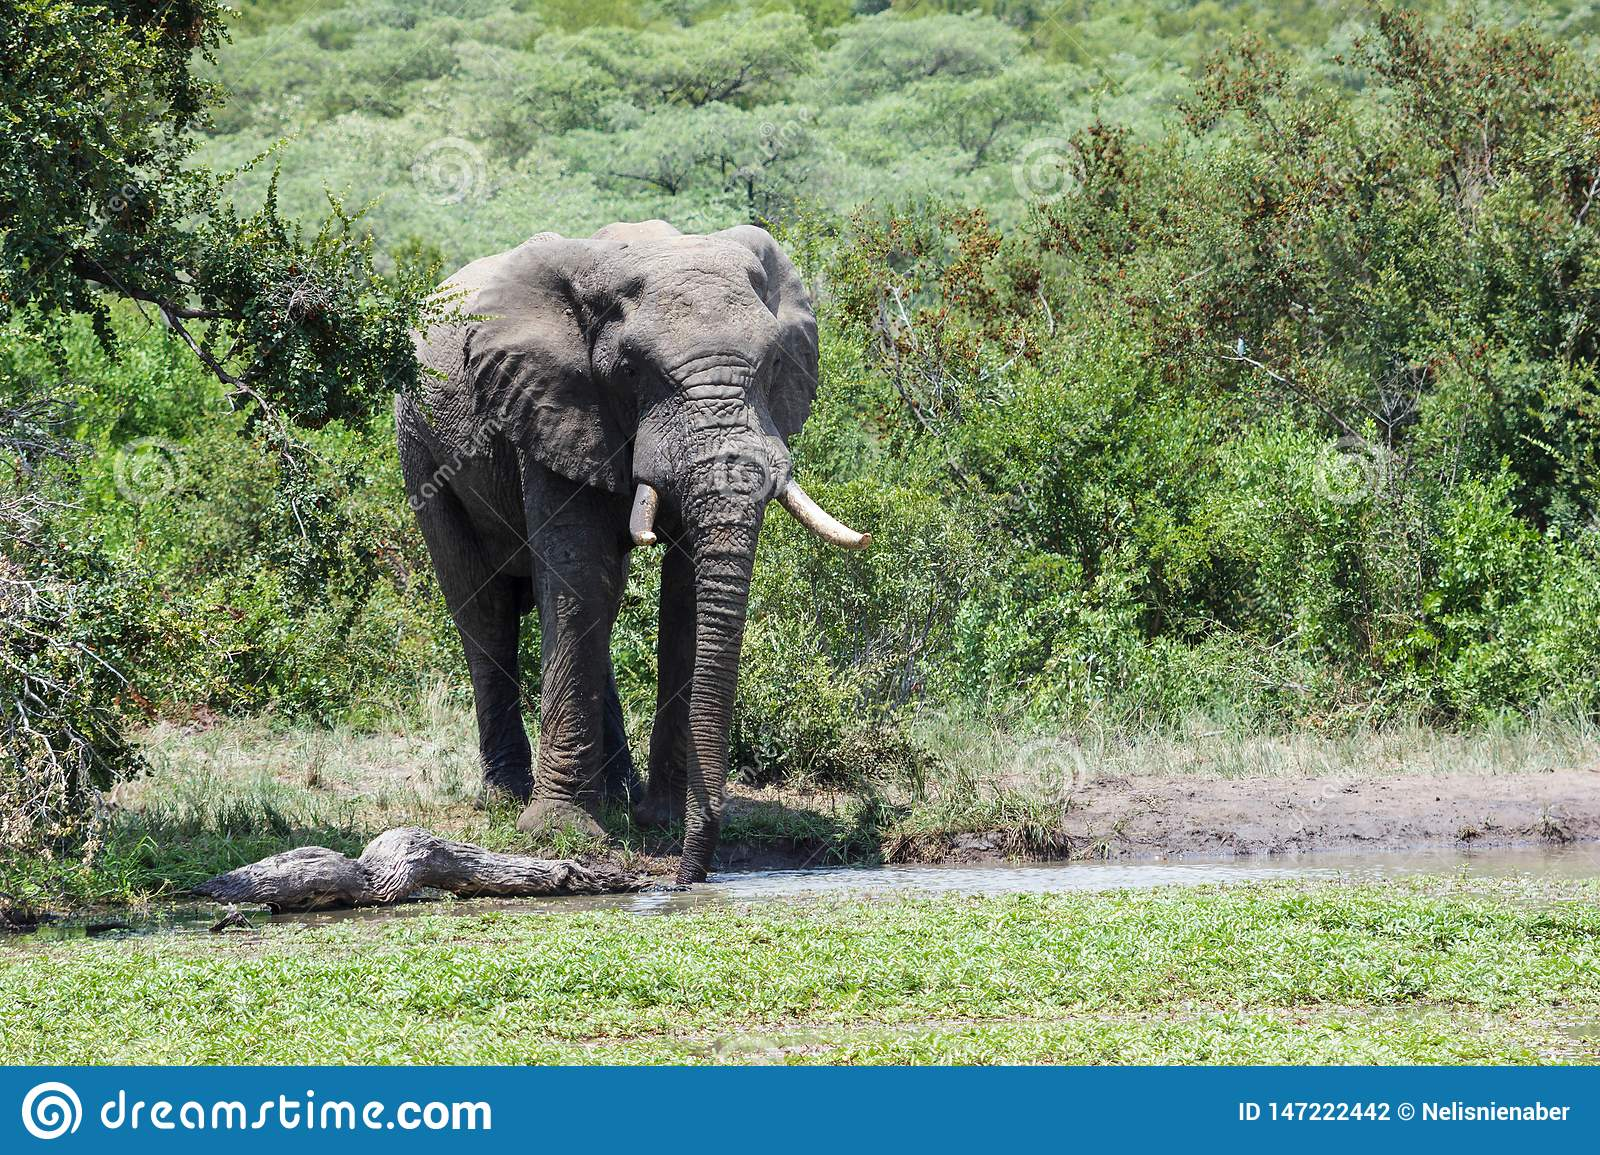 Elephant standing at a watering hole surrounded by lush green vegetation.